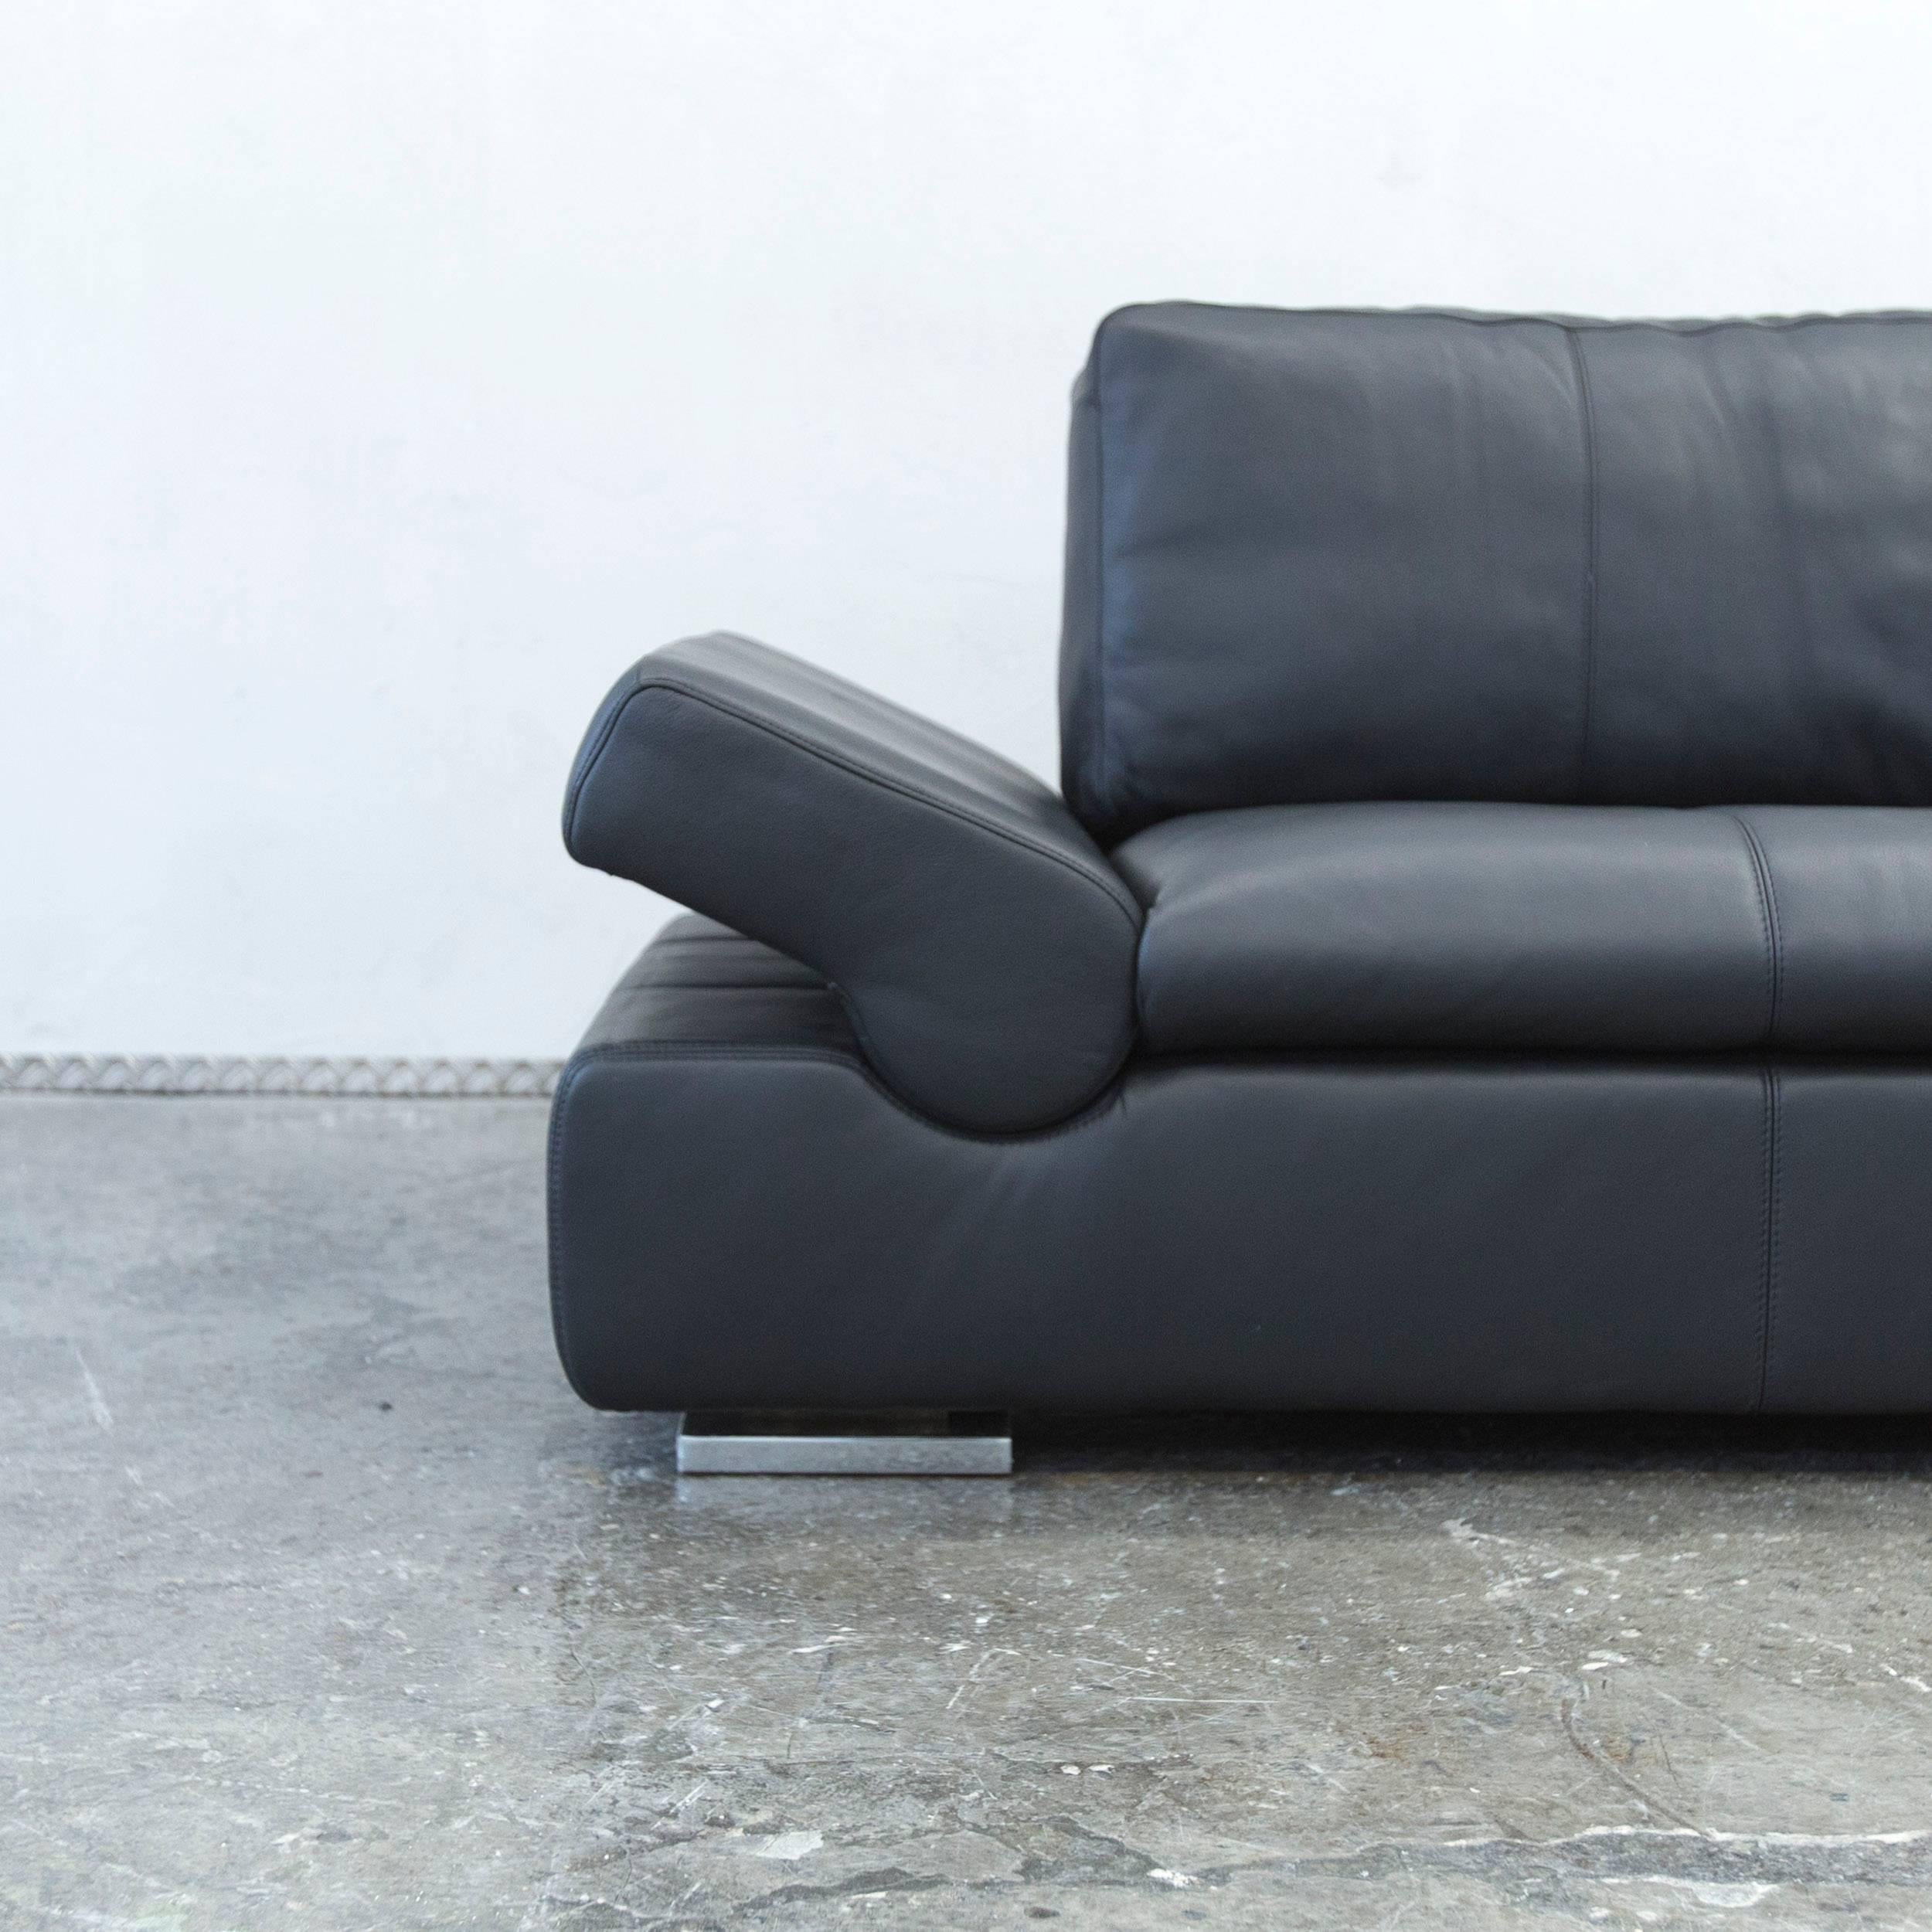 Musterring Ledersofa Musterring International - 2 For Sale At 1stdibs